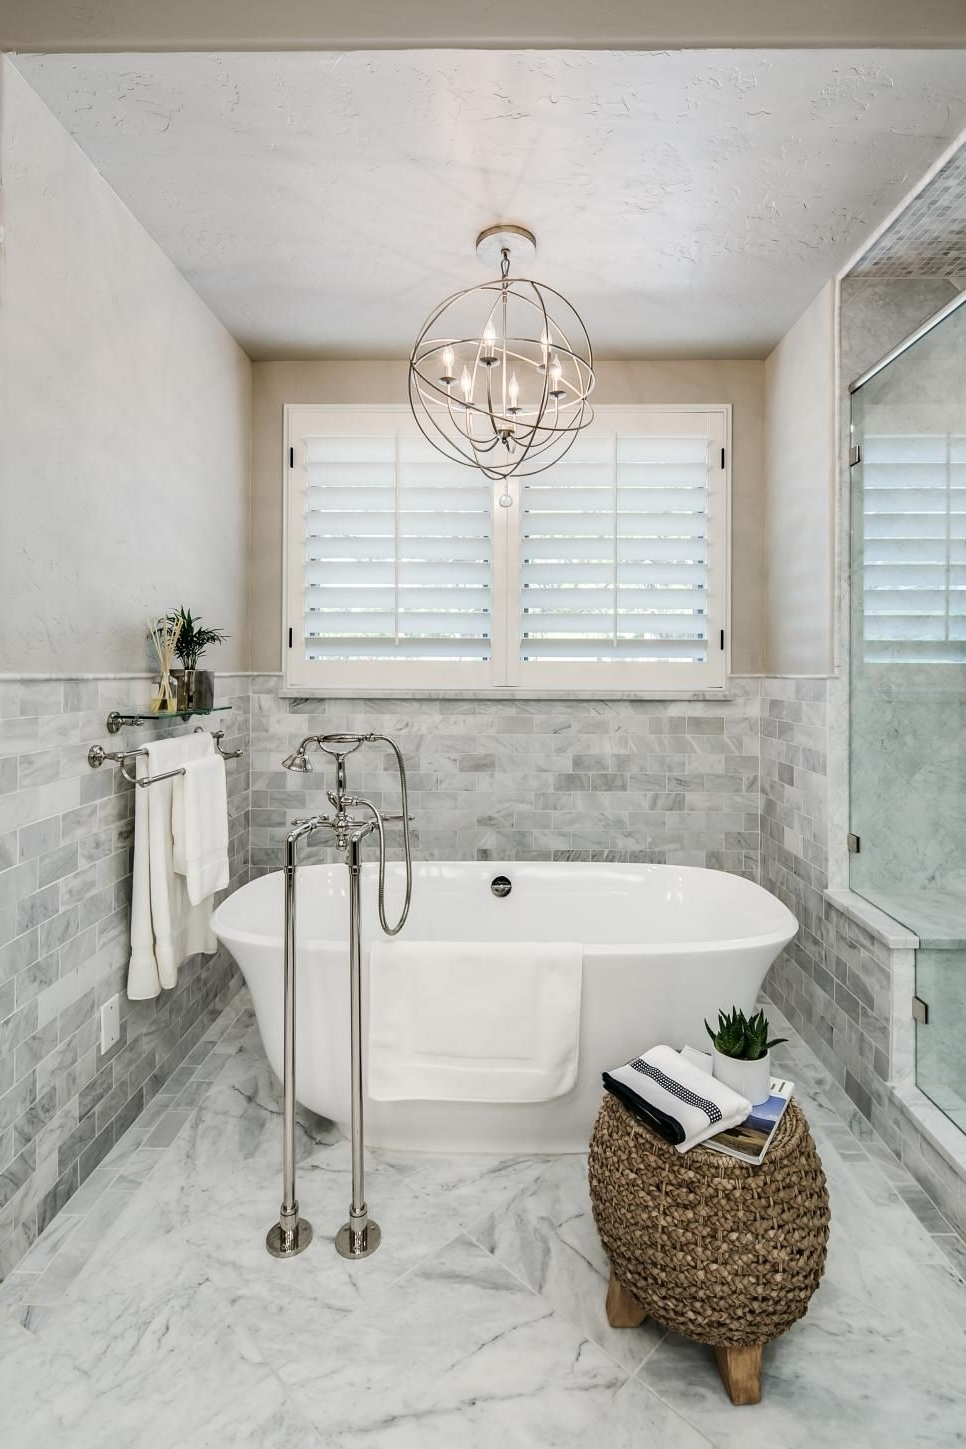 Newest A Metal Orb Chandelier Is Centered Above The Freestanding Tub In Within Wall Mounted Bathroom Chandeliers (View 4 of 15)